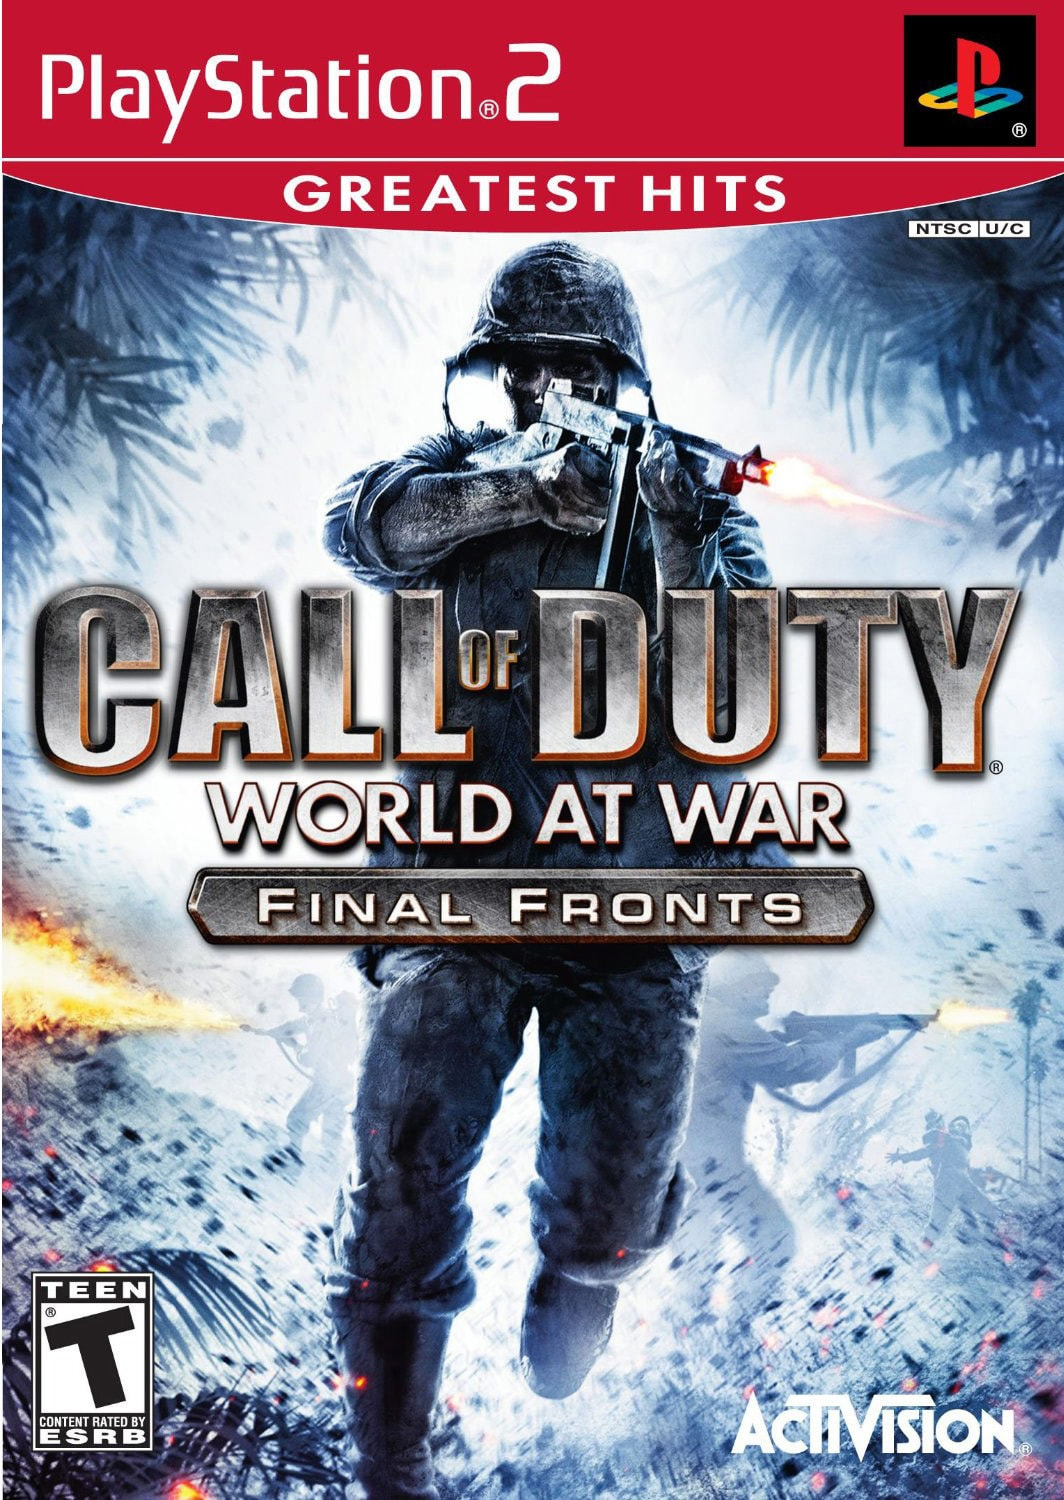 PS2 - Call of Duty: World at War